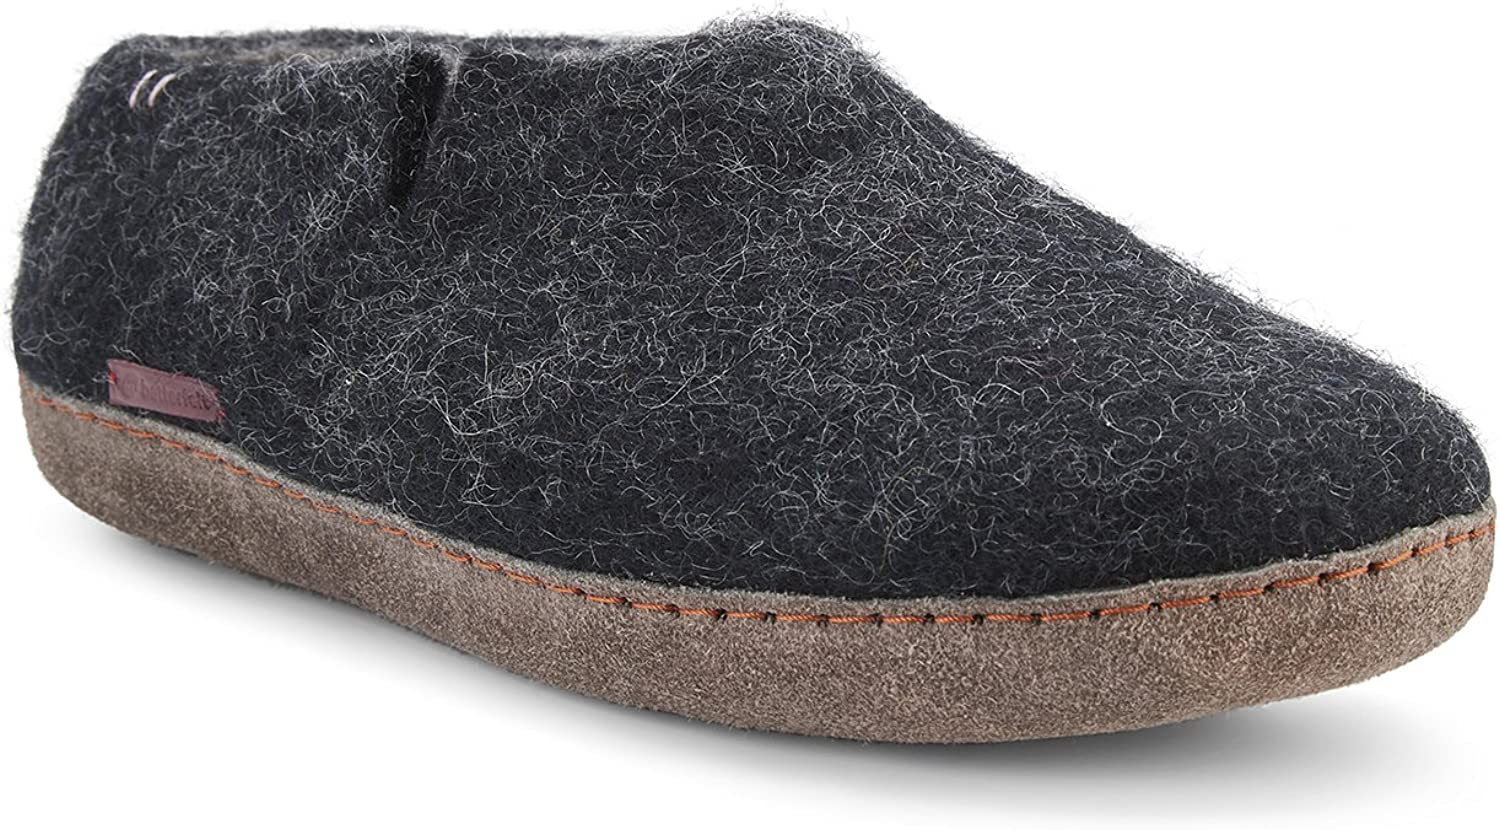 Betterfelt Hand Felted Wool Slippers for Men - Hide Sole - Size 12 - Black - Fairtrade Classic shoes